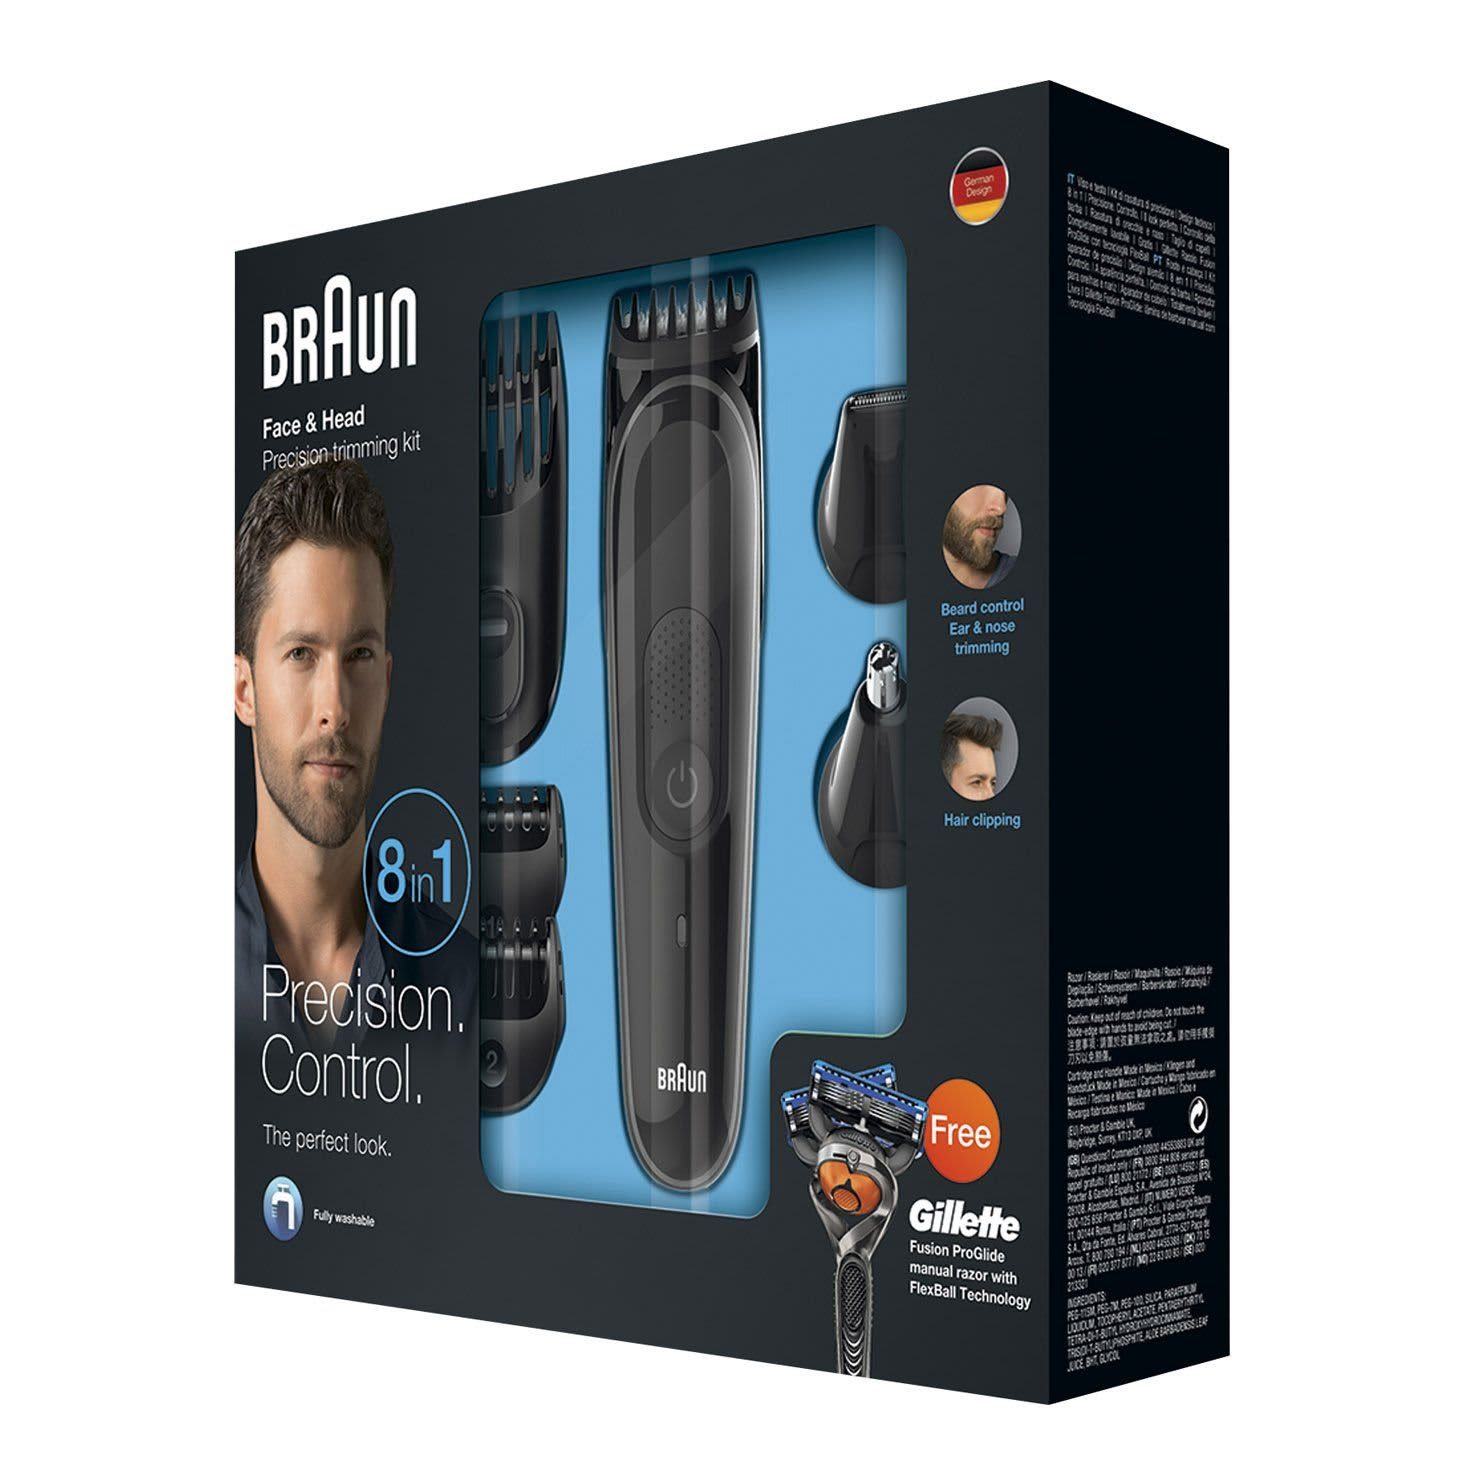 Braun multi grooming kit MGK3060 packaging